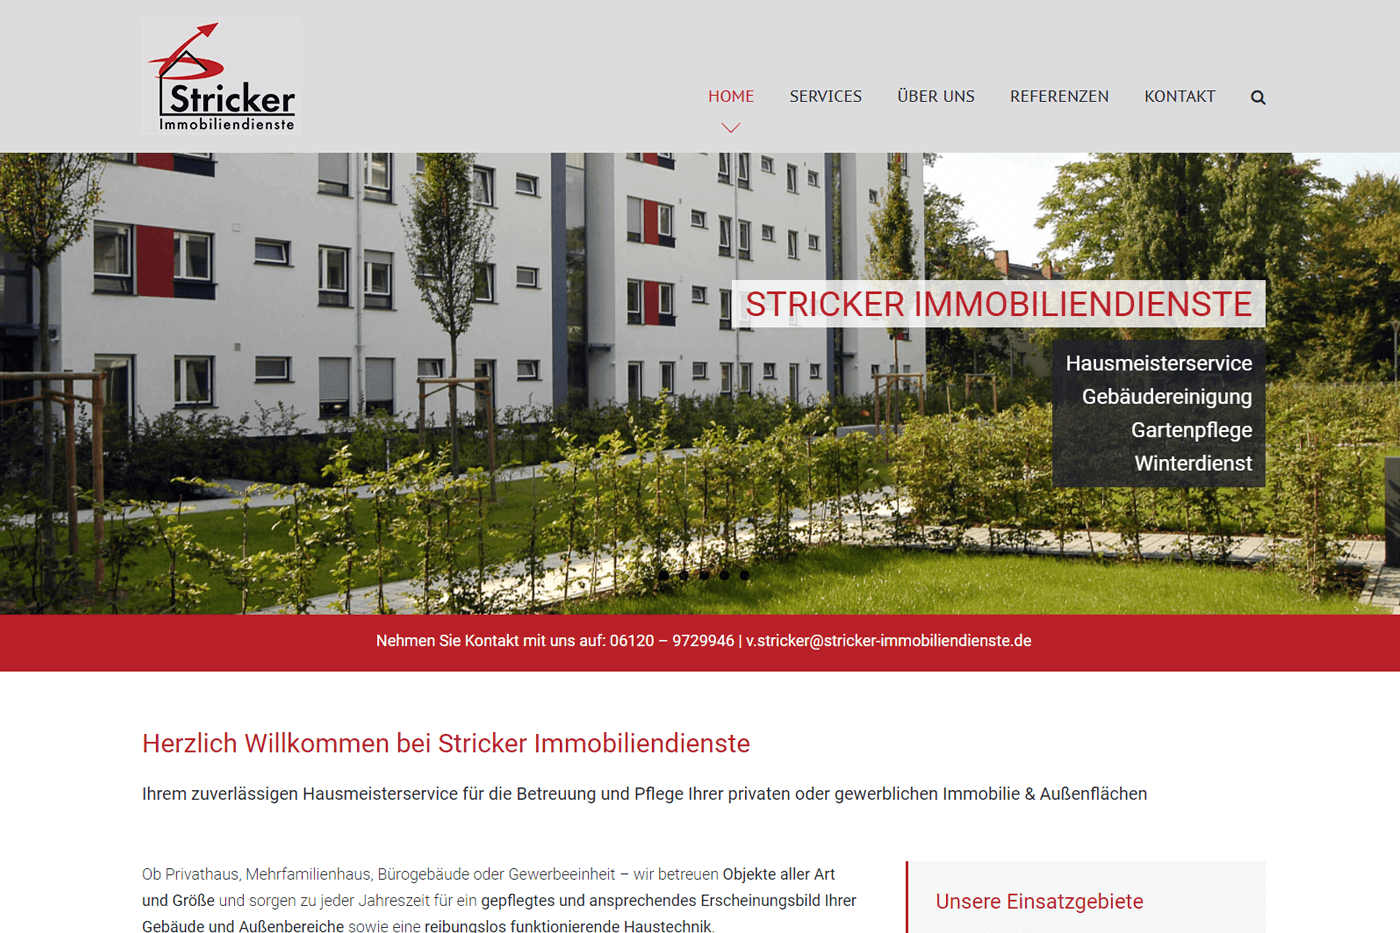 Website für Immobiliendienste Stricker Wiesbaden